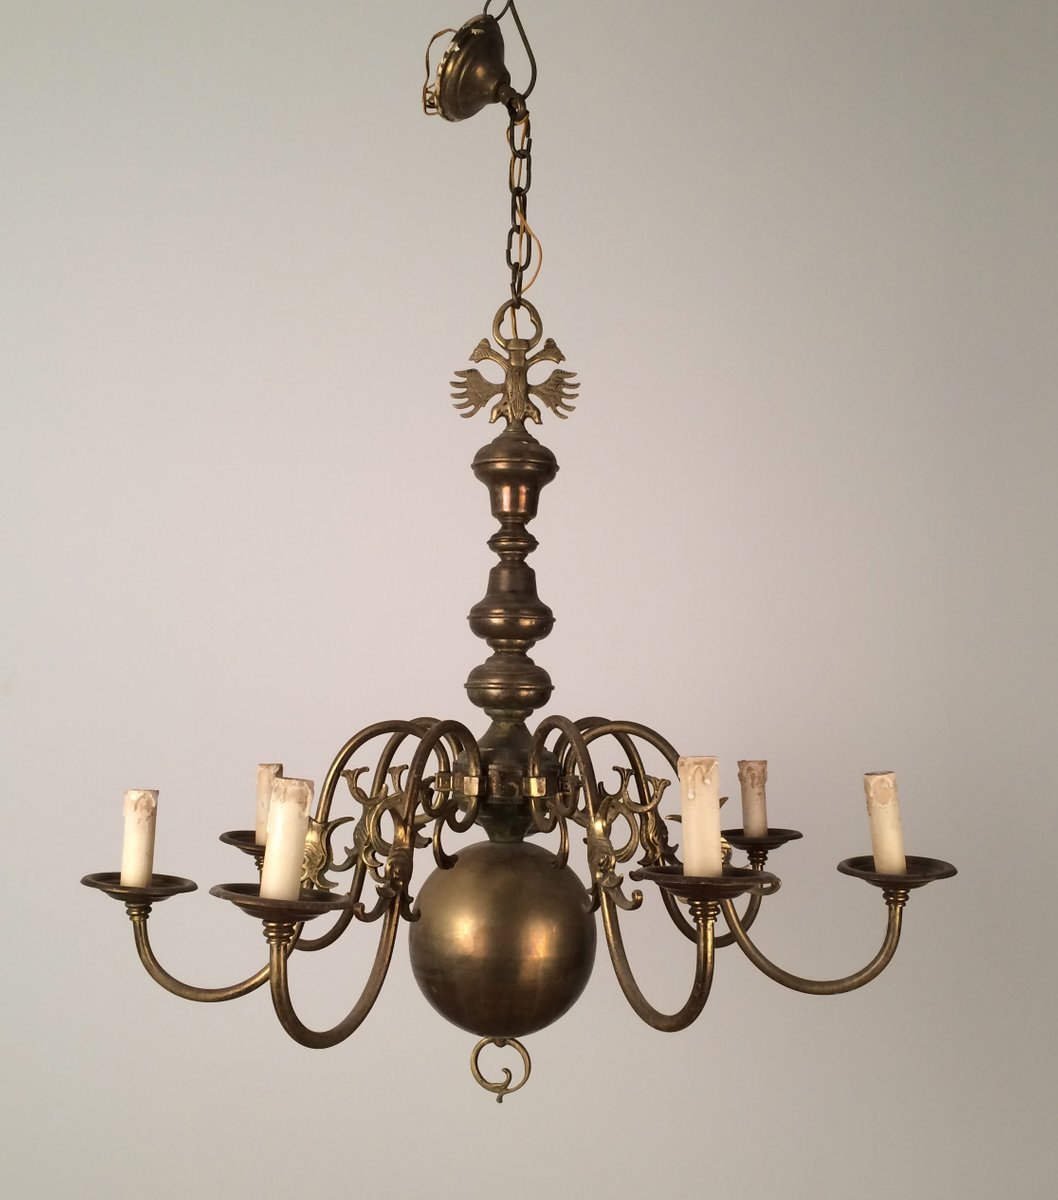 Vintage bronze and brass chandelier 1940s for sale at pamono vintage bronze and brass chandelier 1940s arubaitofo Image collections